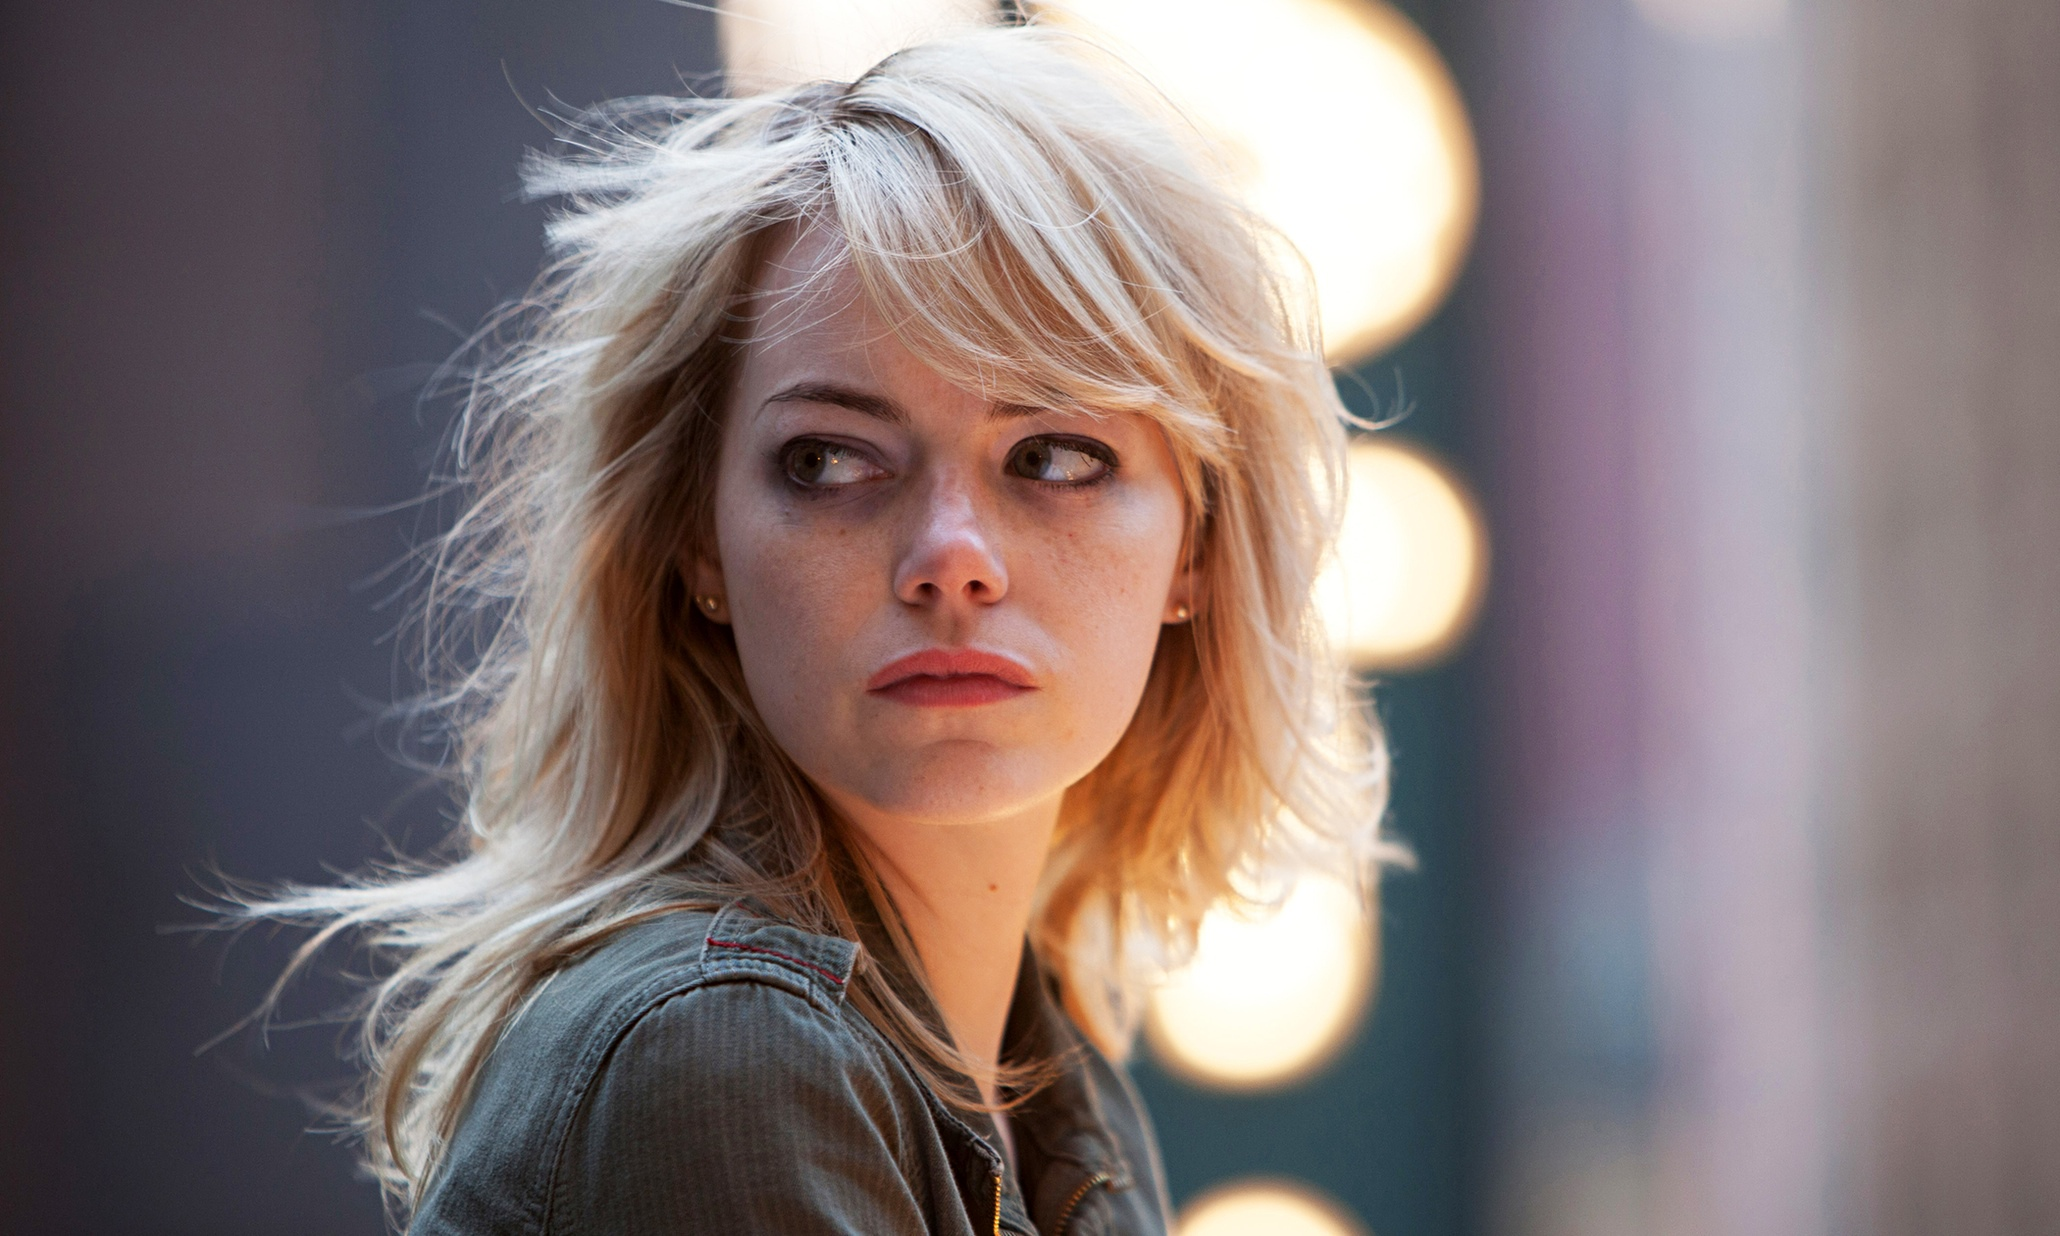 Emma Stone is number 10 on our list of the Top 10 Hottest Celebrities Under 35